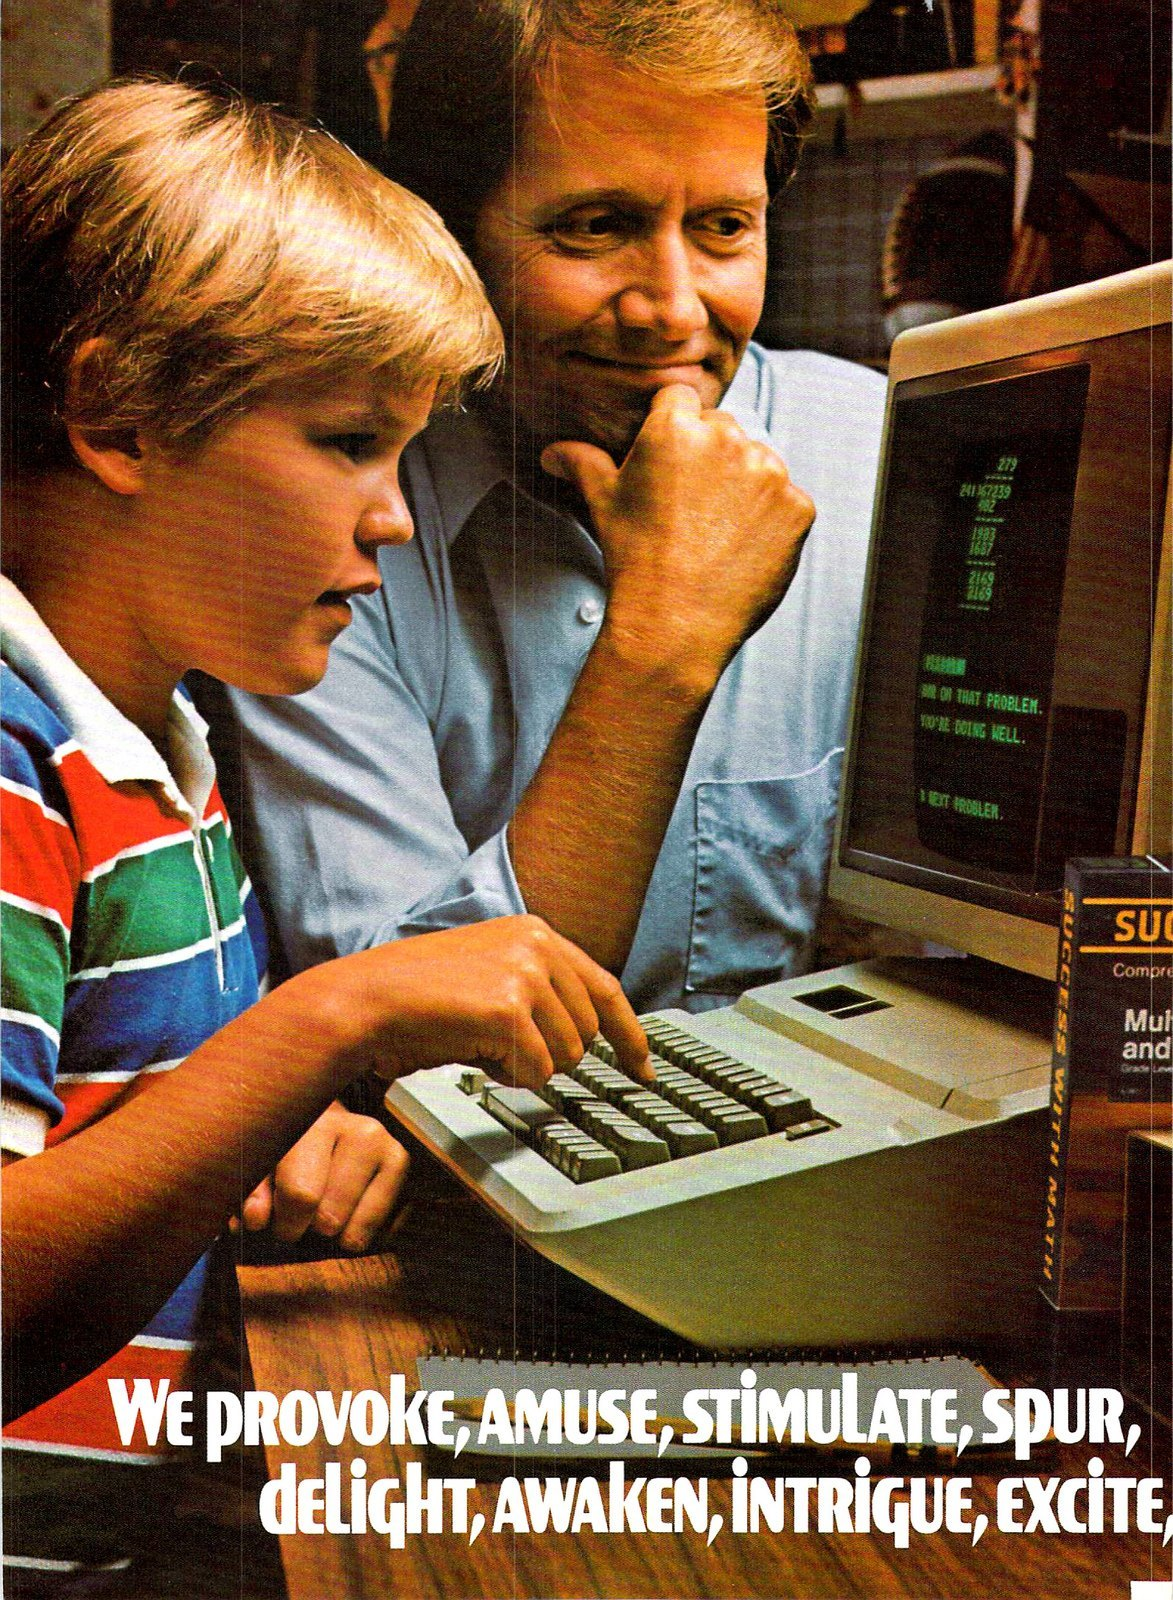 1980s home computers